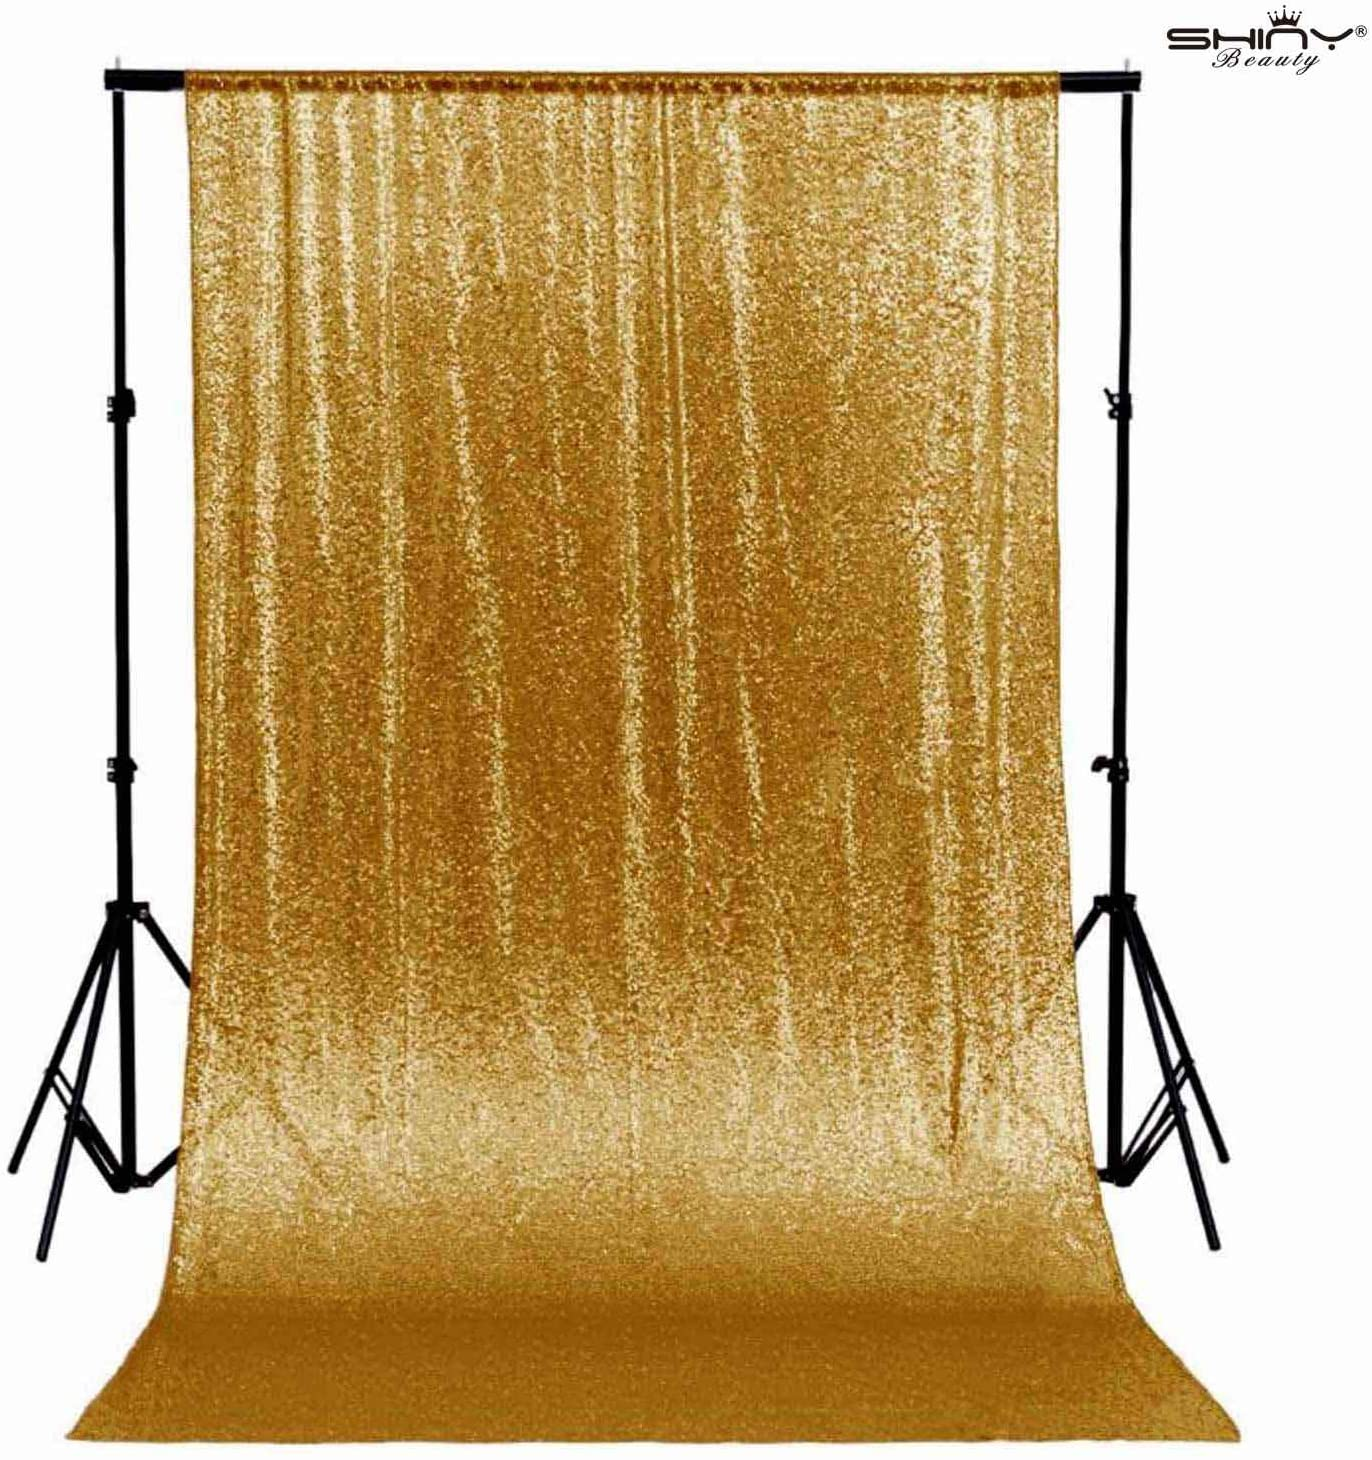 Gold Sequin Curtain Backdrop 2 Panels 4FTx8FT Photo Curtain Backdrop Curtain Panels 96 Inches Long -190522E